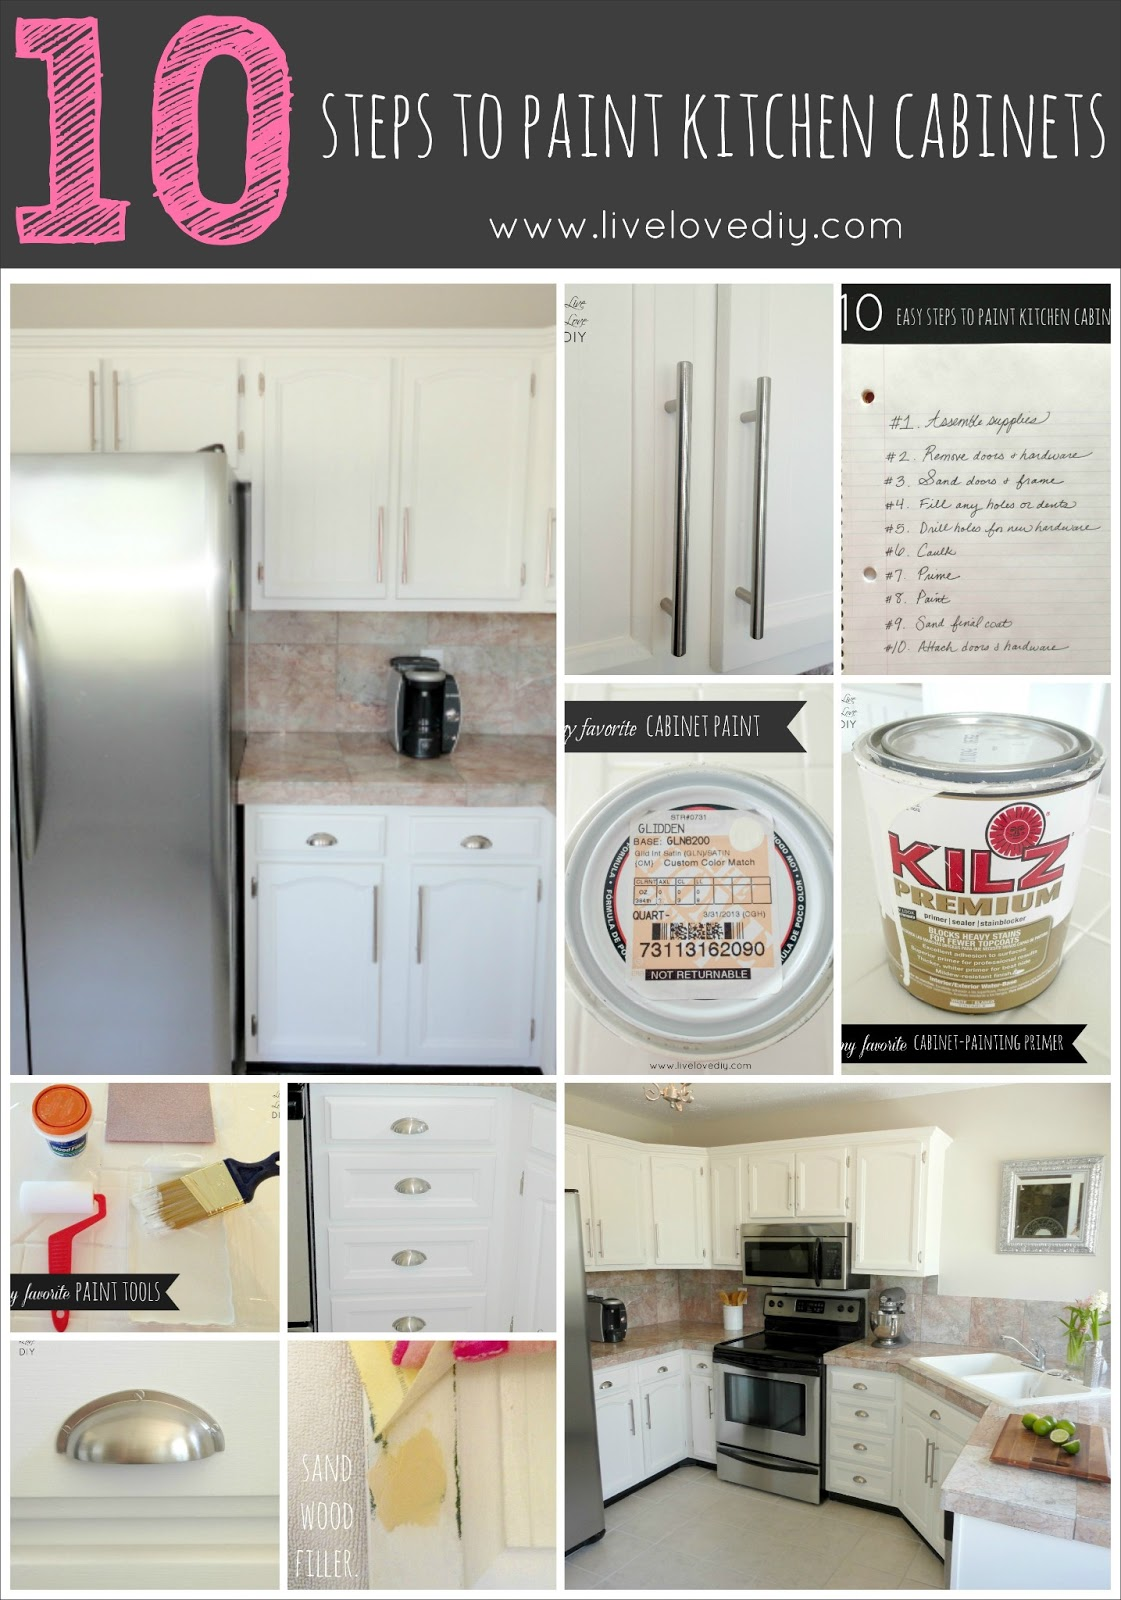 10 easy steps to paint kitchen cabinets repainting kitchen cabinets How To Paint Kitchen Cabinets in 10 Easy Steps